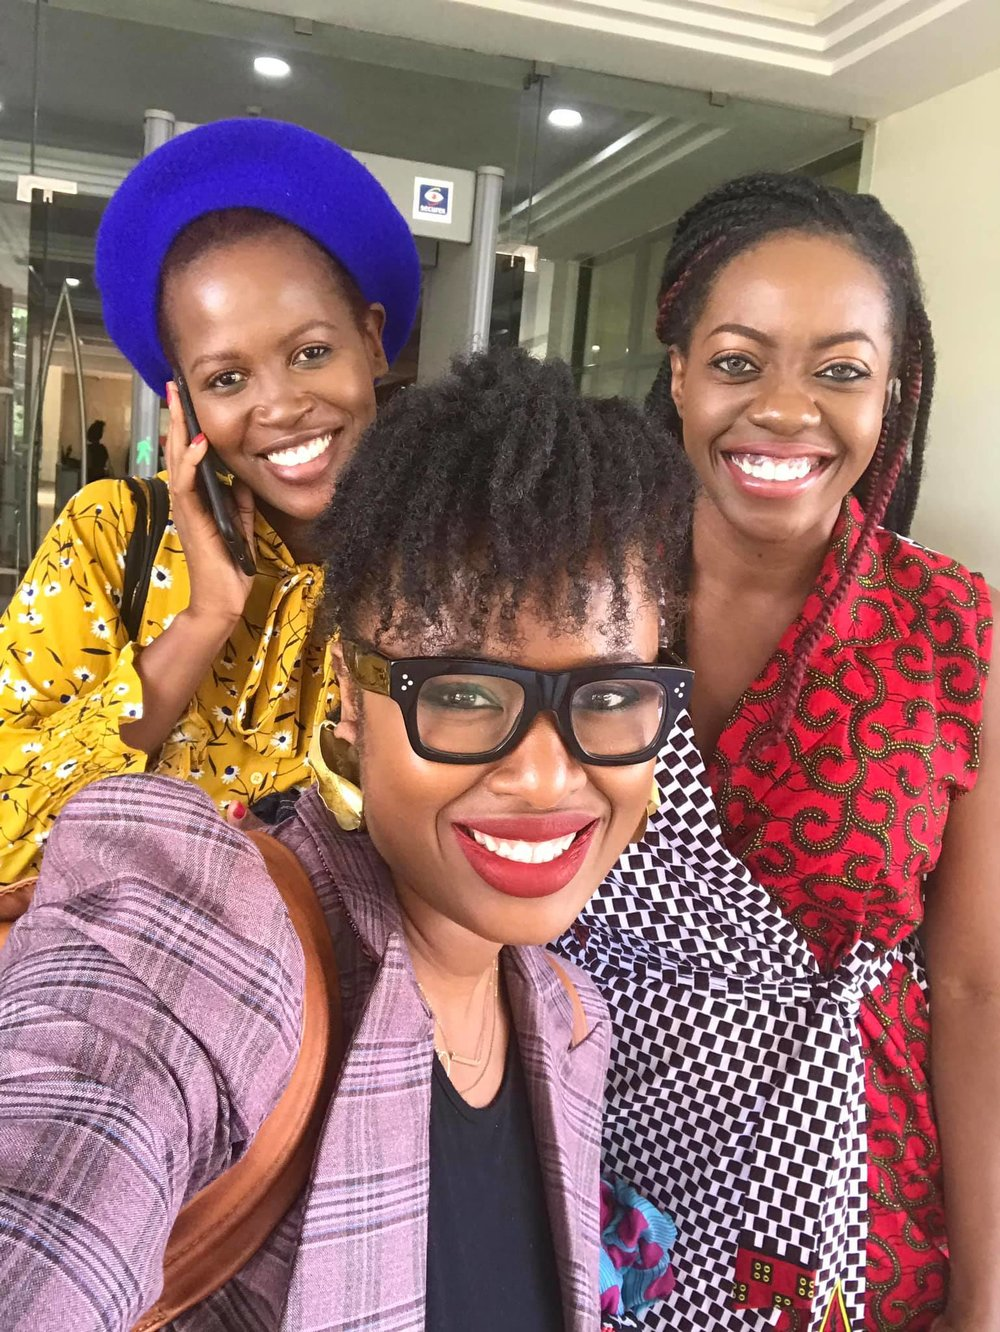 mandatory selfie post The She Word filming at BBC Africa with Mandy Amandine and Sade Ladipo. I was the first guest ever from Sierra Leone on the show. Gladly set the bar all the way high.